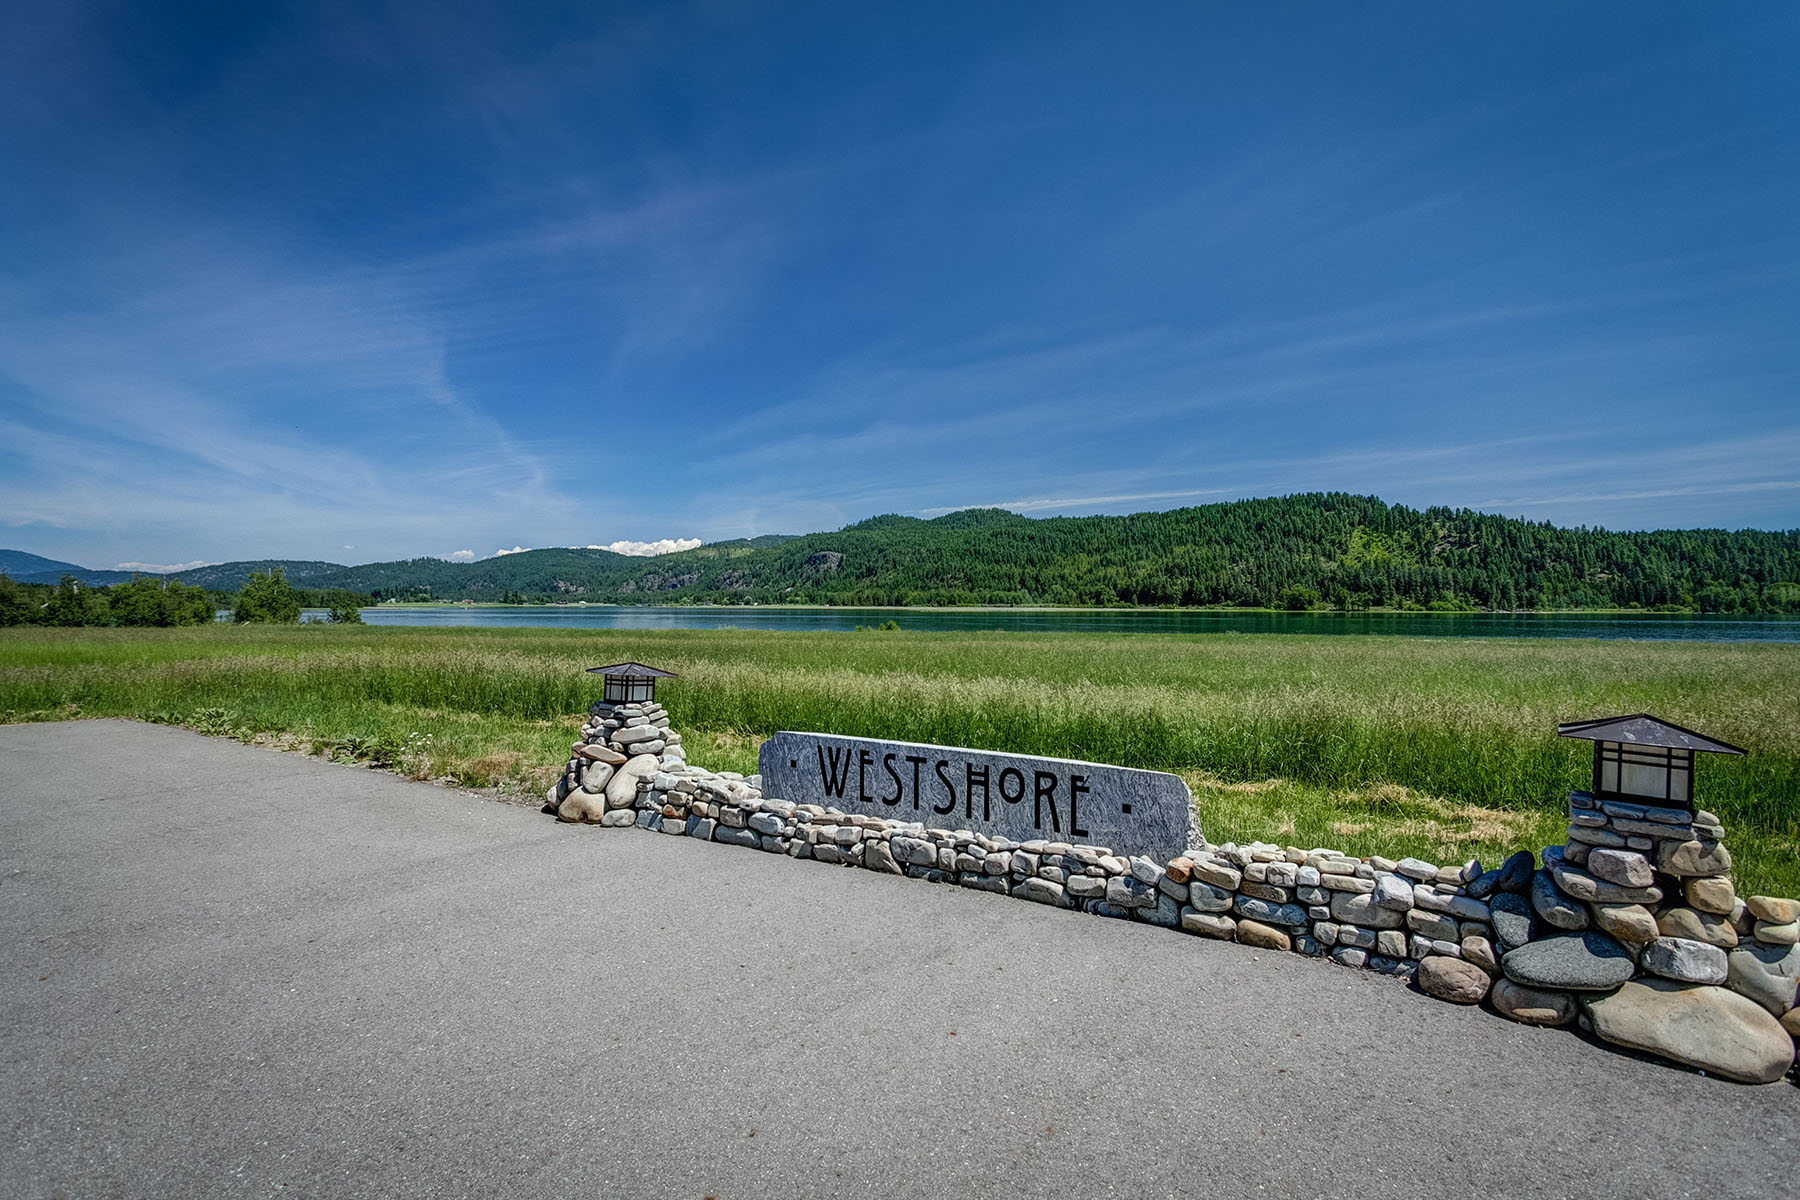 Terreno por un Venta en Westshore Waterfront Building Sites Lot 8 Westshore Way Laclede, Idaho, 83841 Estados Unidos